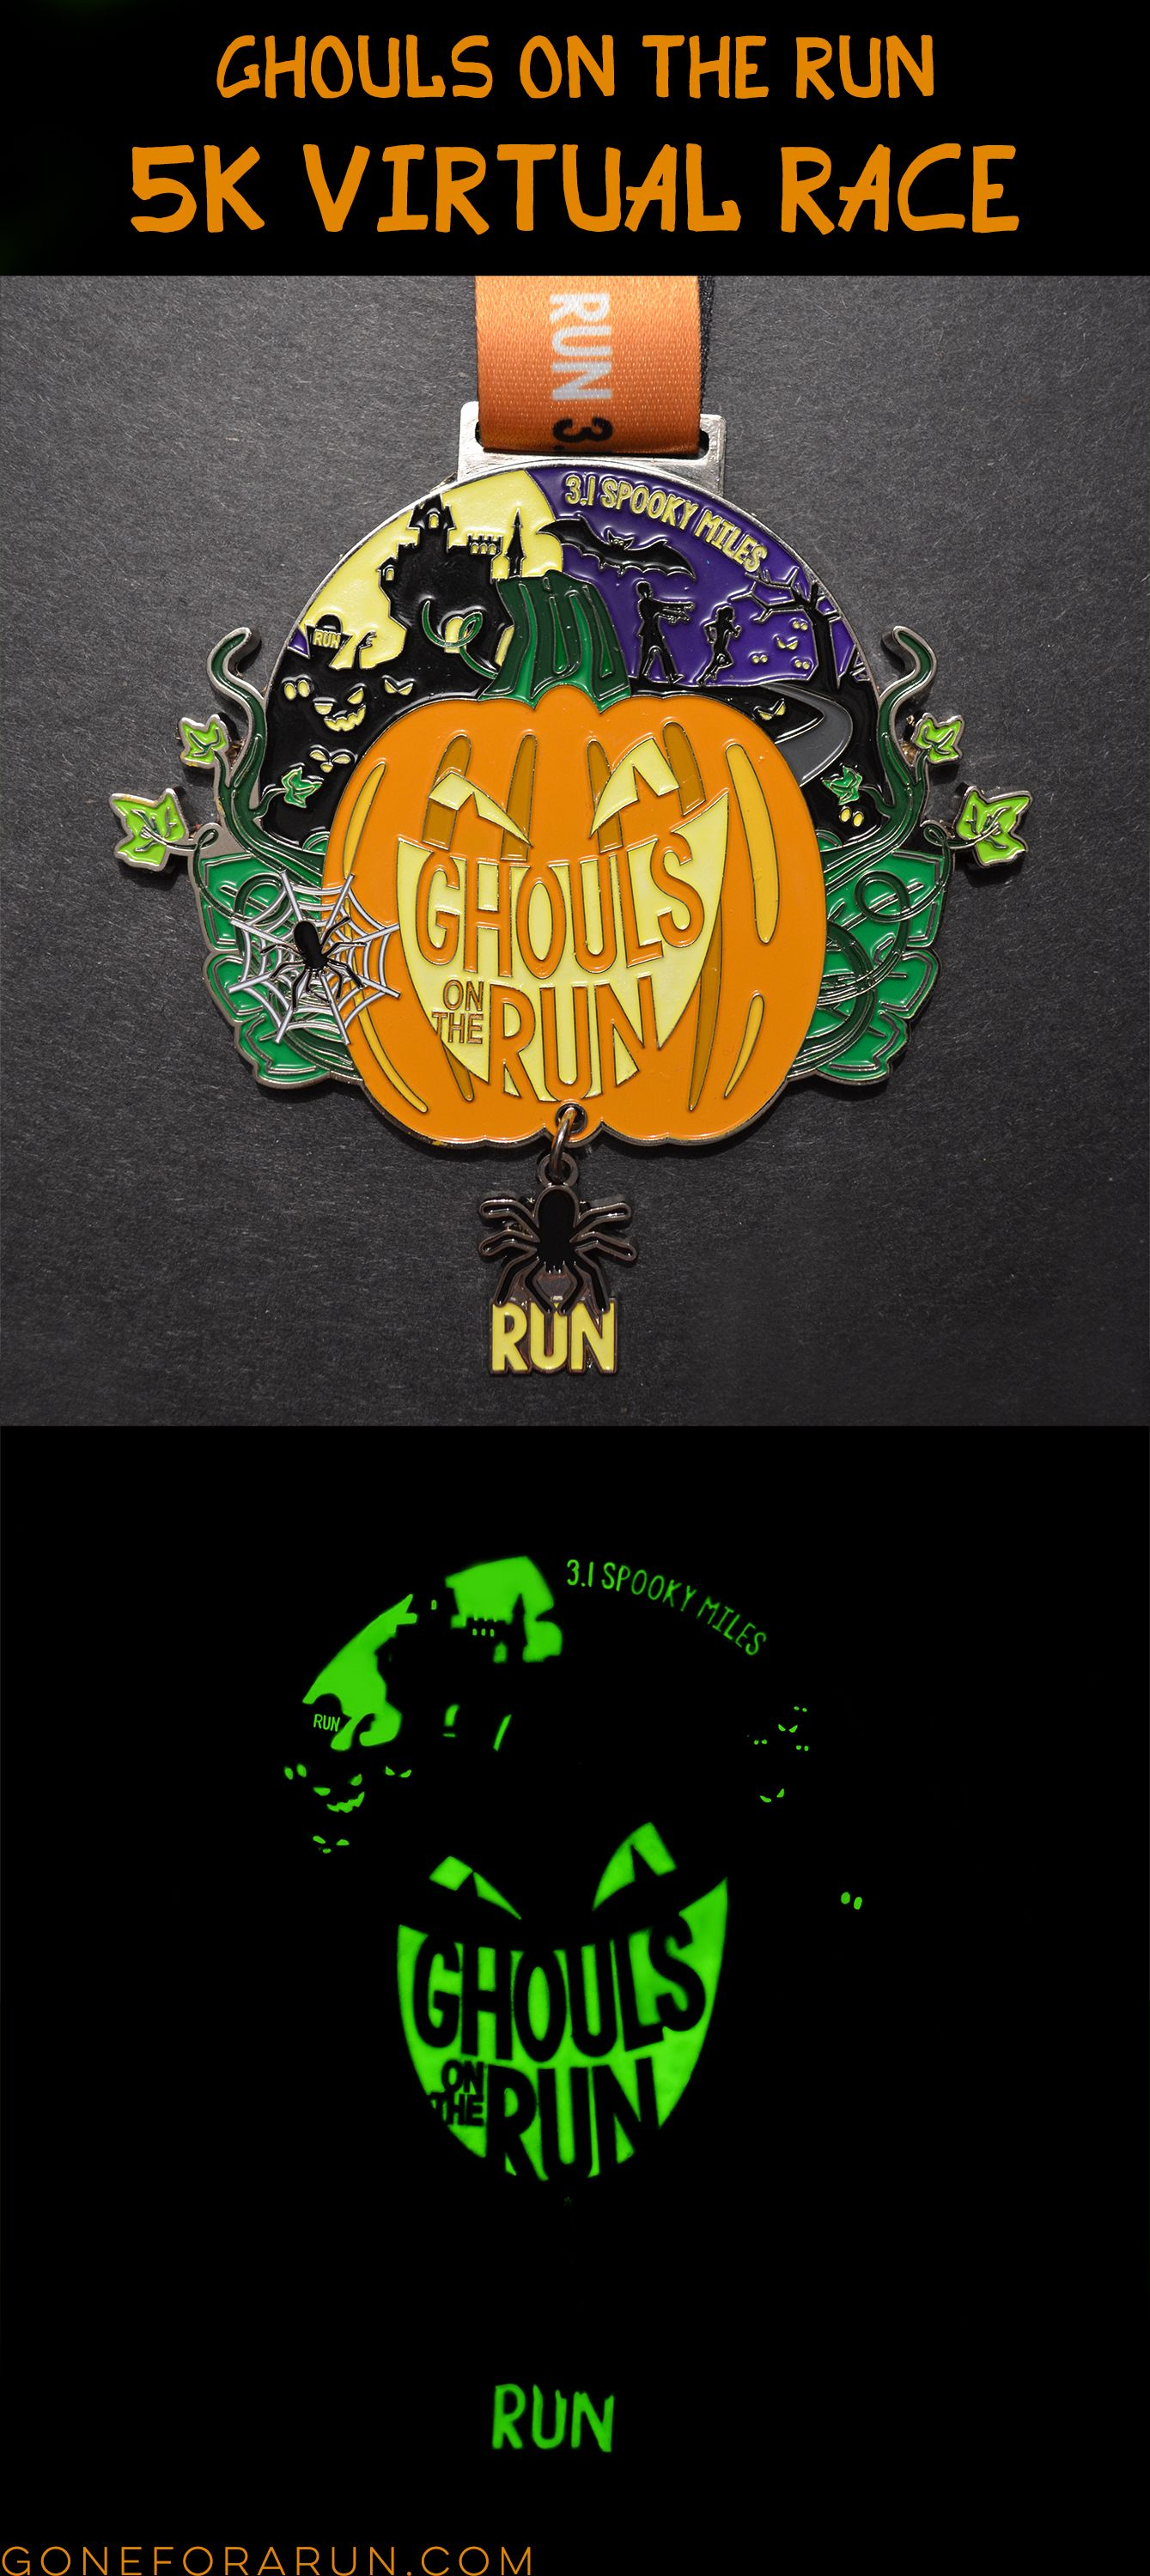 e8f41ffd4 Halloween Virtual Race! This year's race features a glow in the dark medal,  your choice of a race tee or tank and a real race bib. Run anywhere, share  with ...